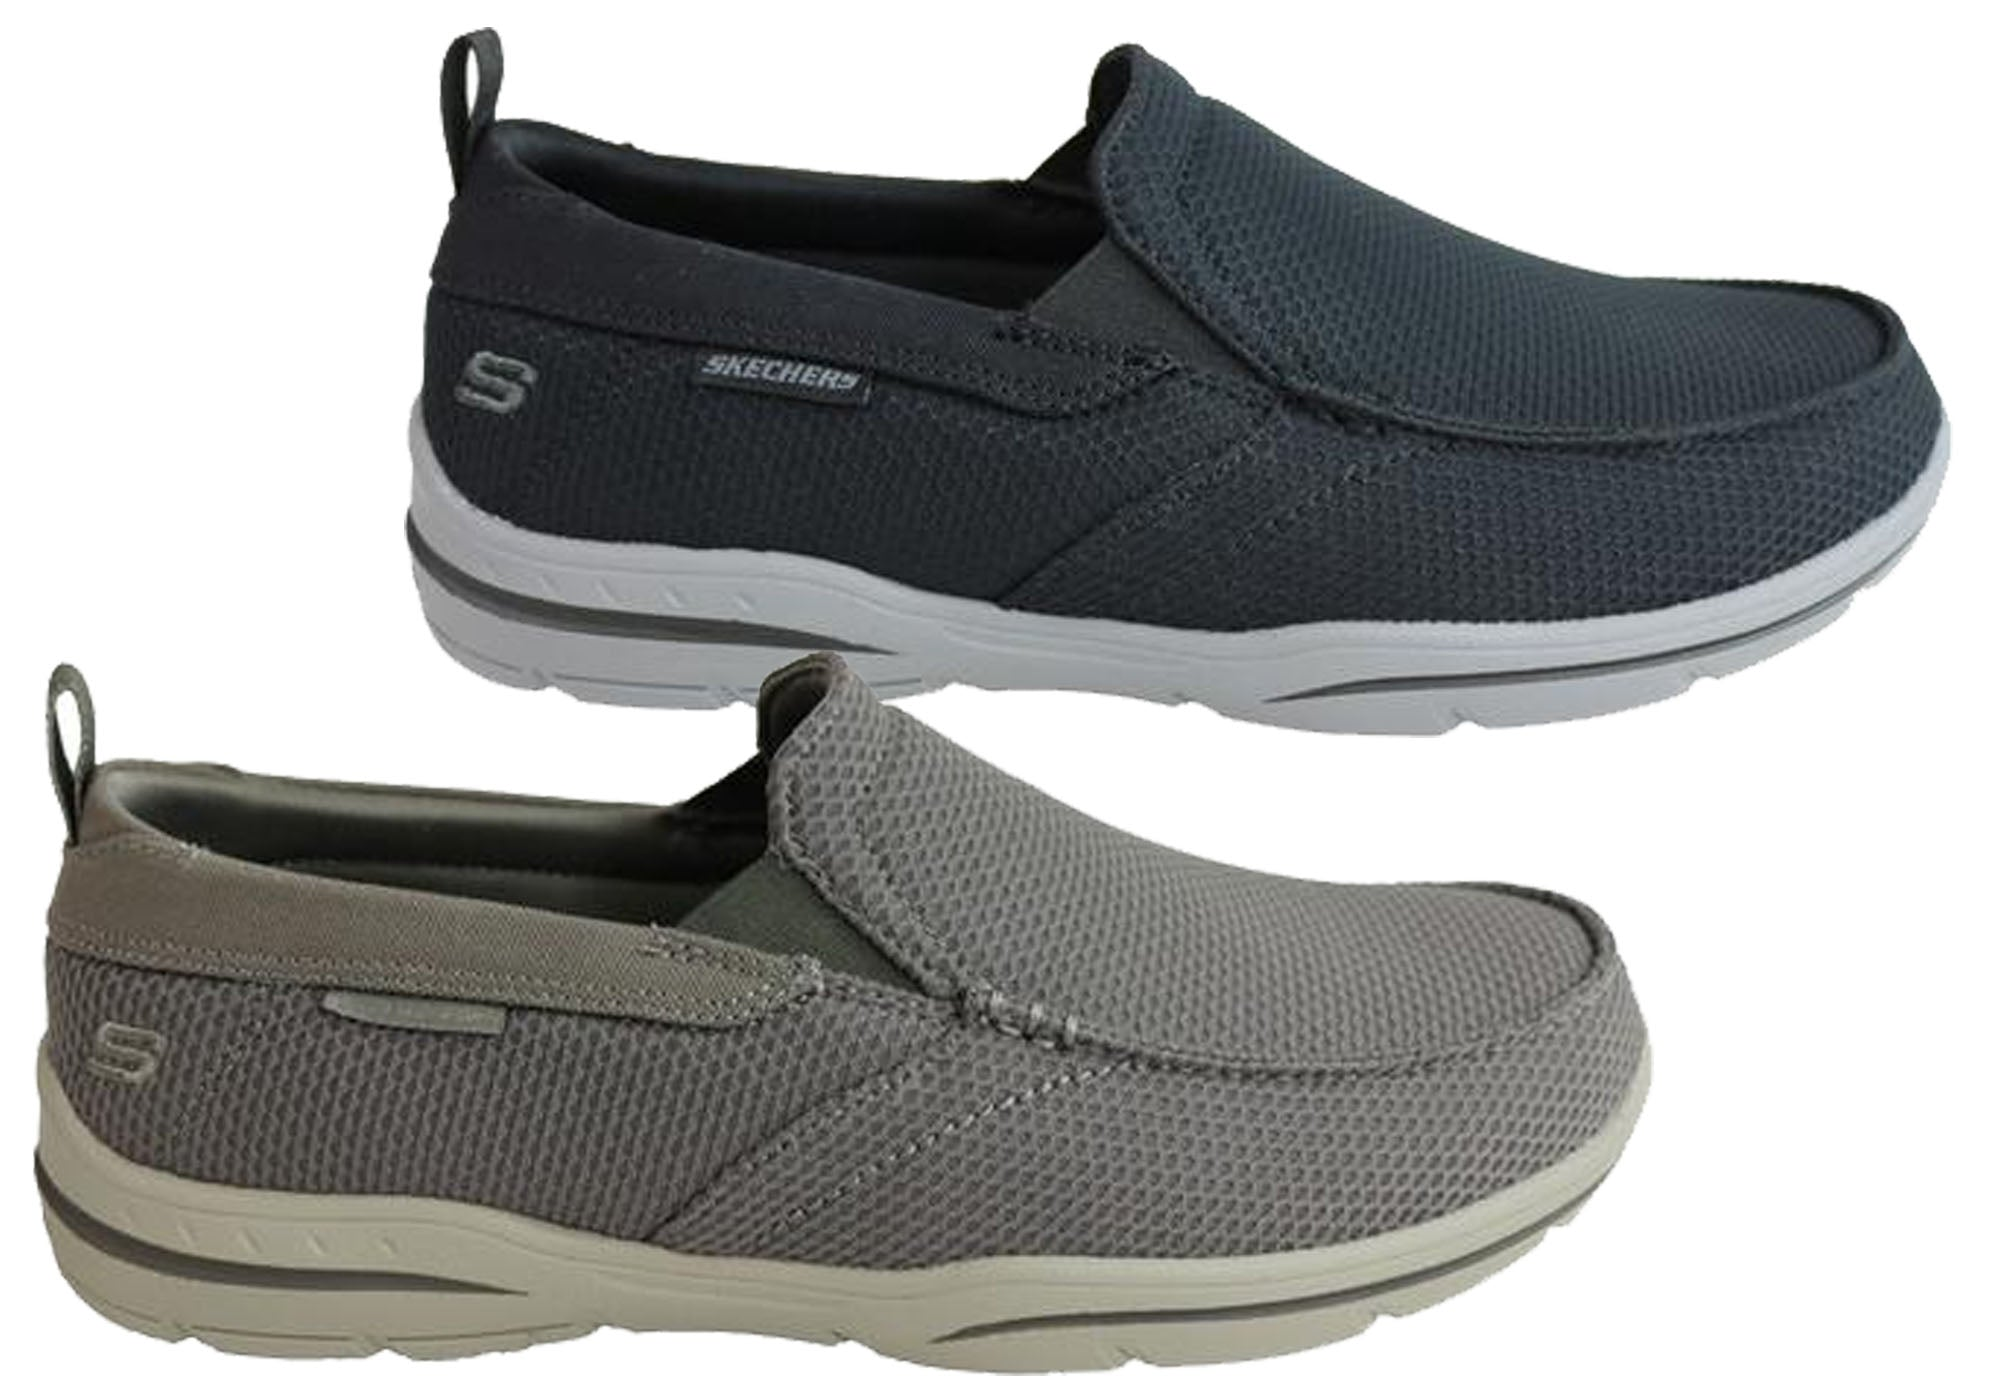 the new skechers sneakers